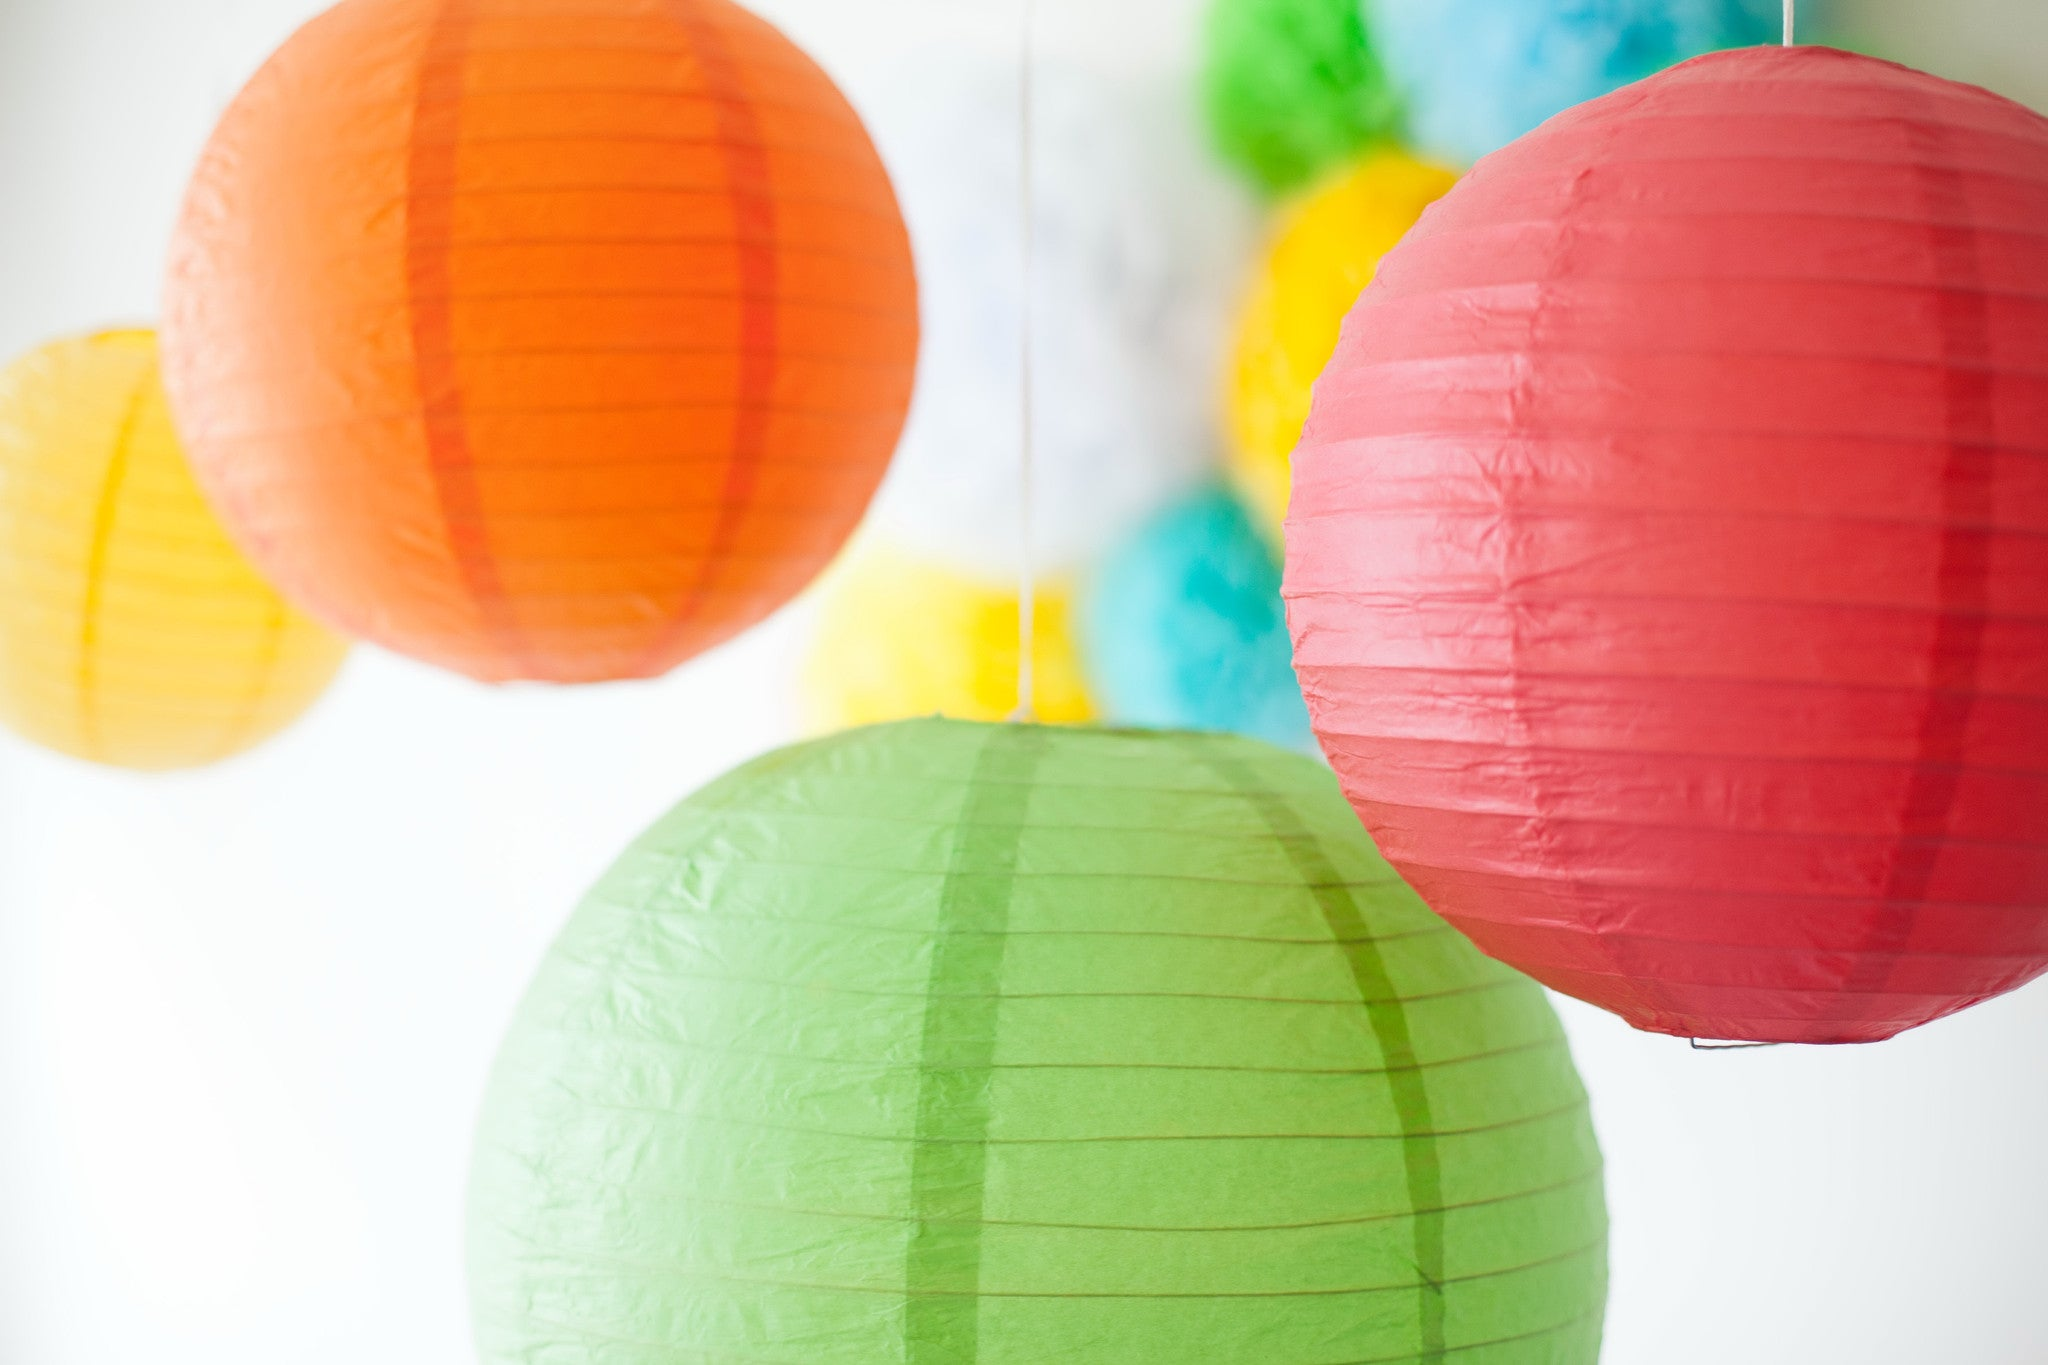 Paper Lantern (30cm), Partyware, 3littlepicks - 3LittlePicks